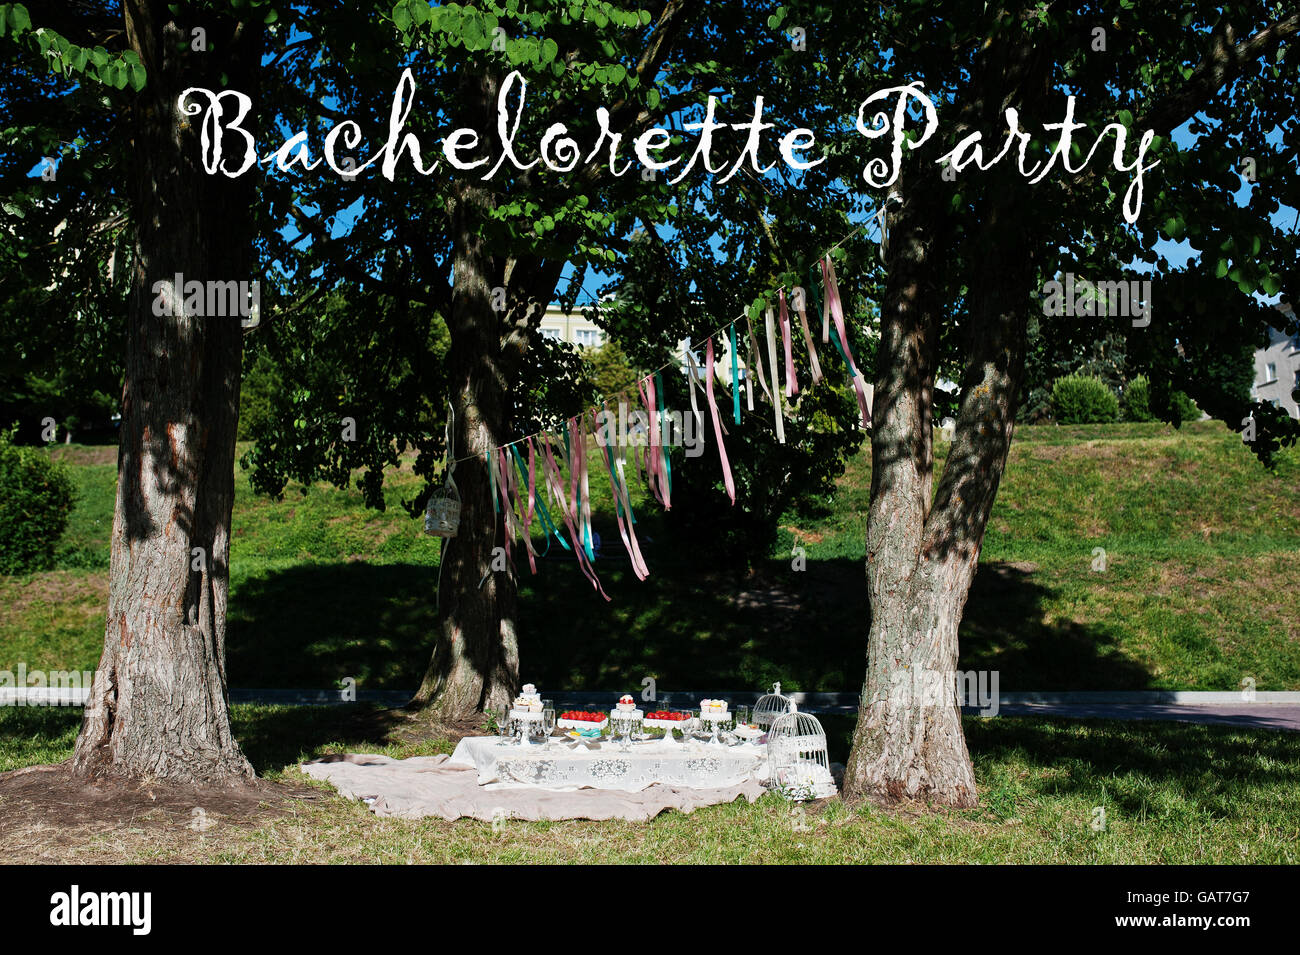 Picnic Decor Picnic Table With Decor On Grass Near Trees Bachelorette Party